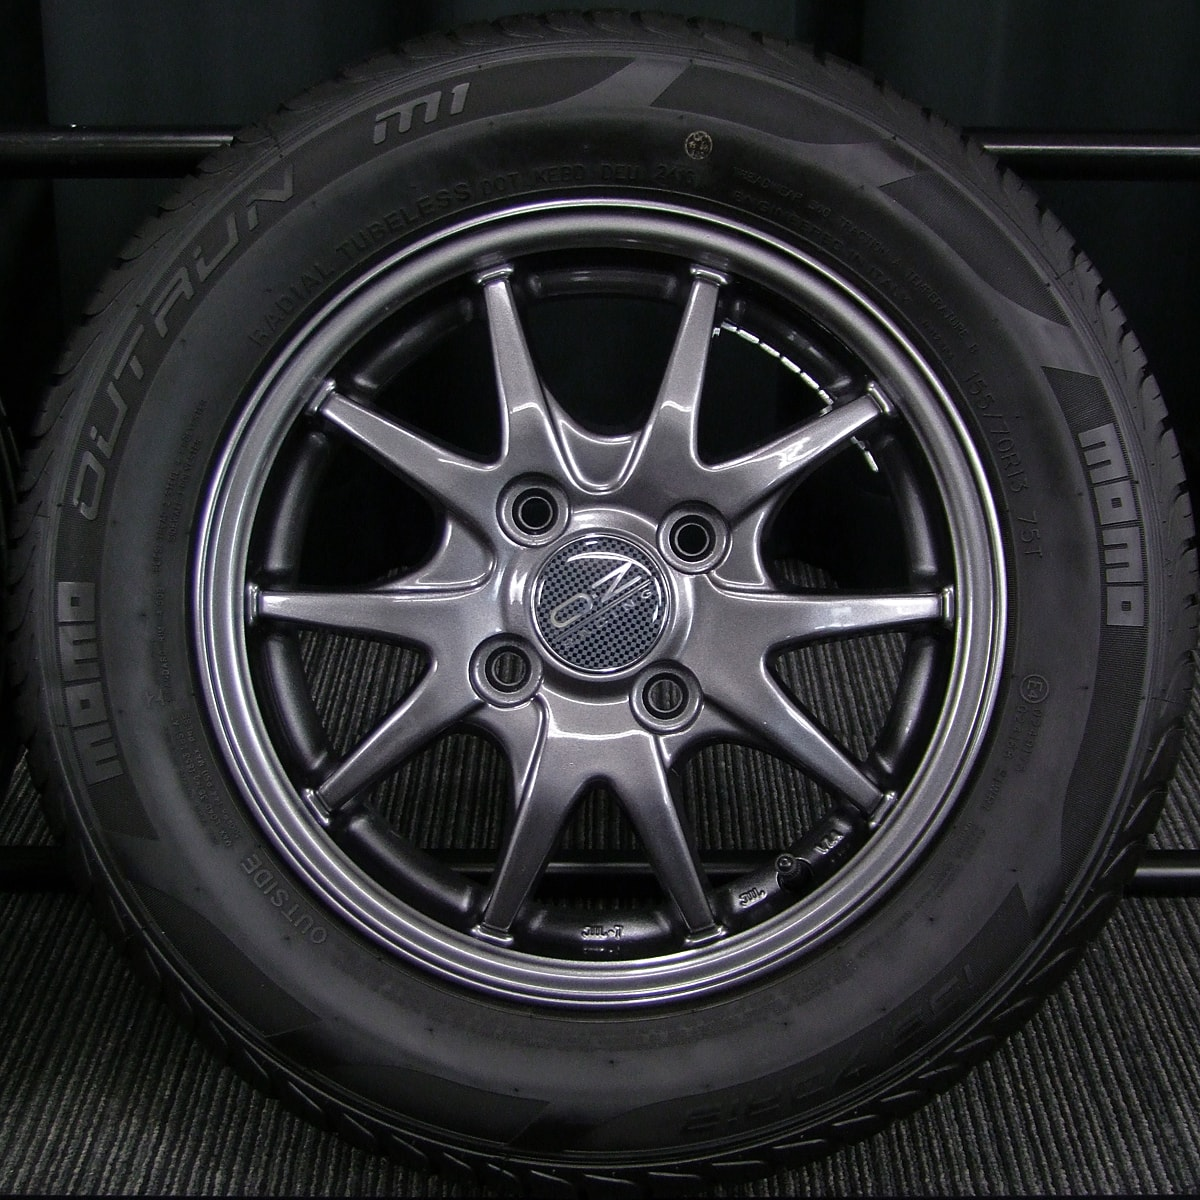 A-TECH SCHNEIDER CLICK PREMIUM LIGHT ガンメタ MOMO OUTRUN M-1 155/70R13 4本SET